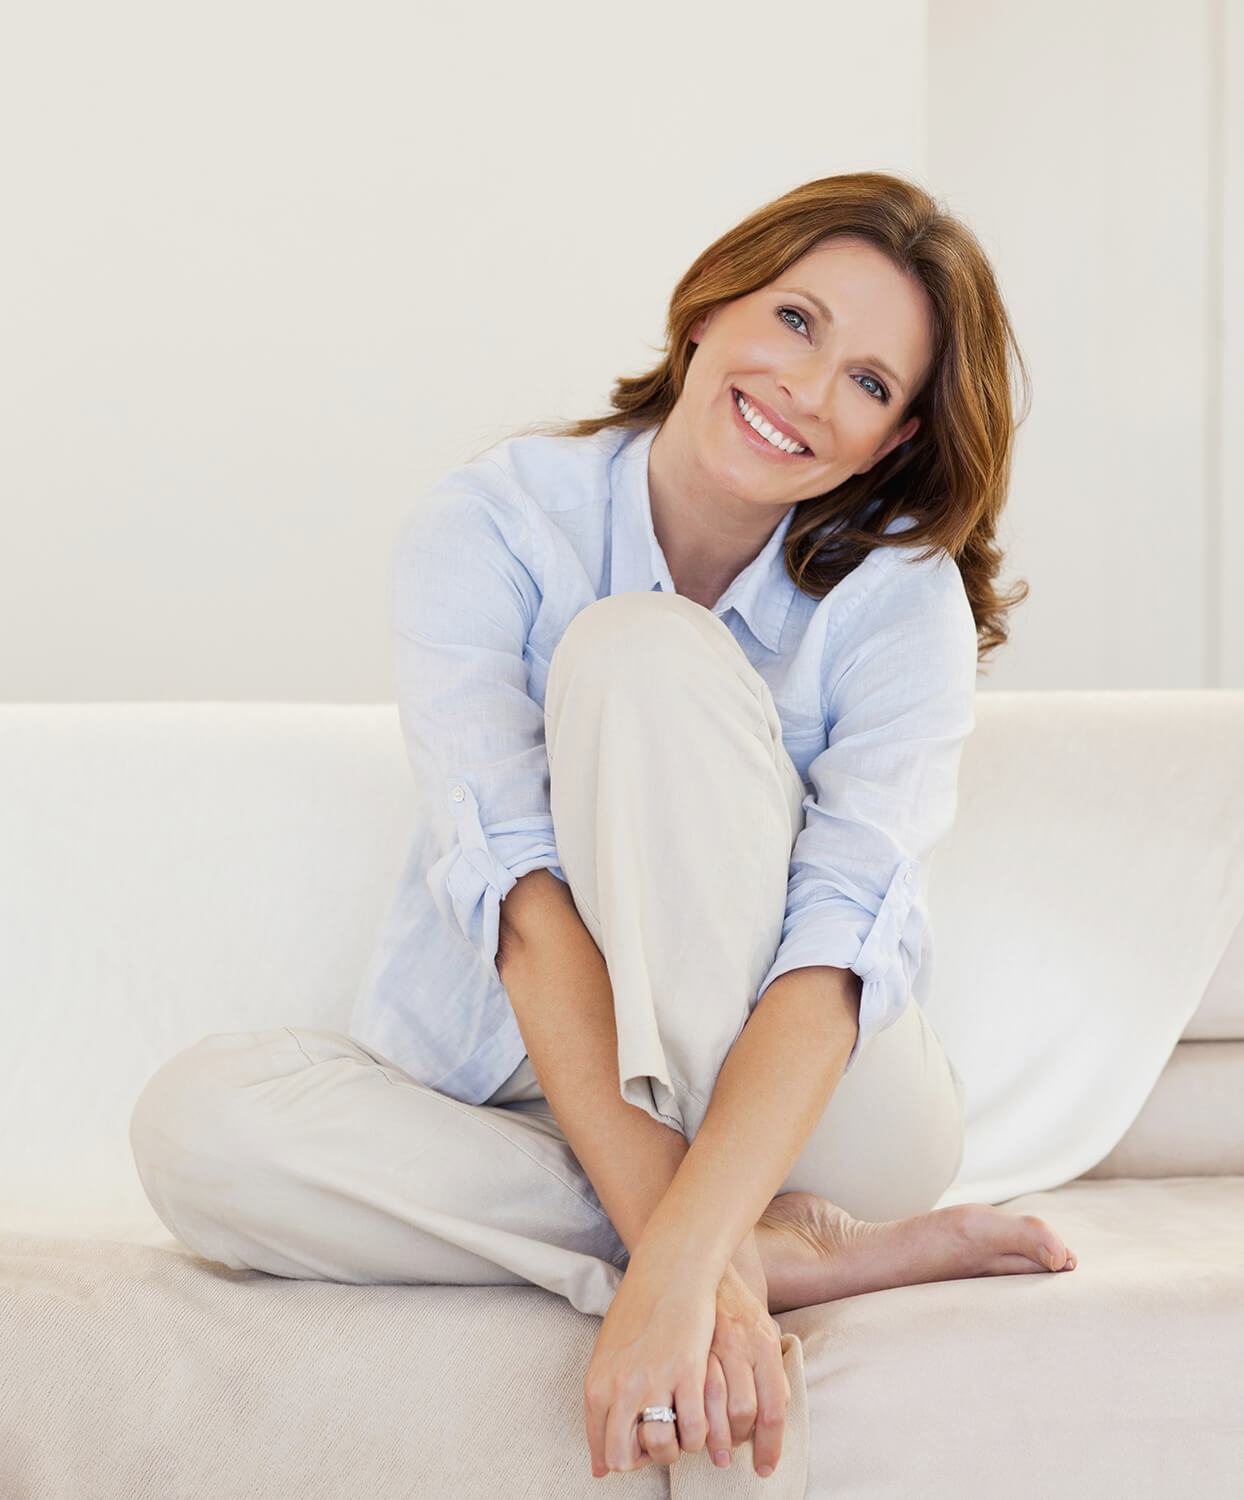 Hold It!: What are the Causes and Treatments for Urinary Incontinence?